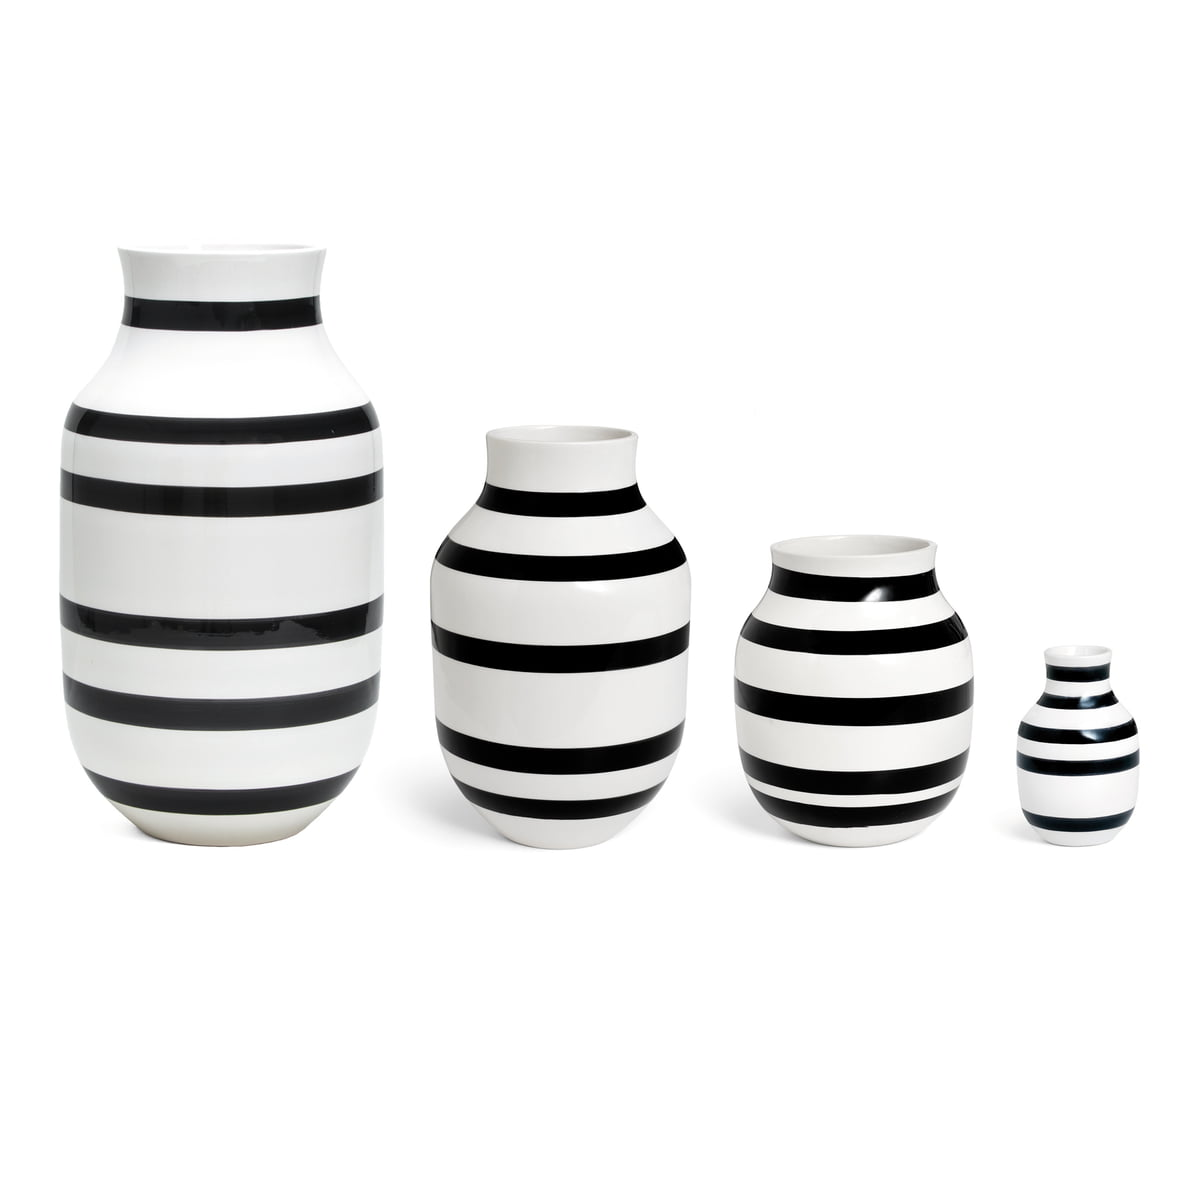 omaggio vase h 12 5 cm von k hler design connox. Black Bedroom Furniture Sets. Home Design Ideas